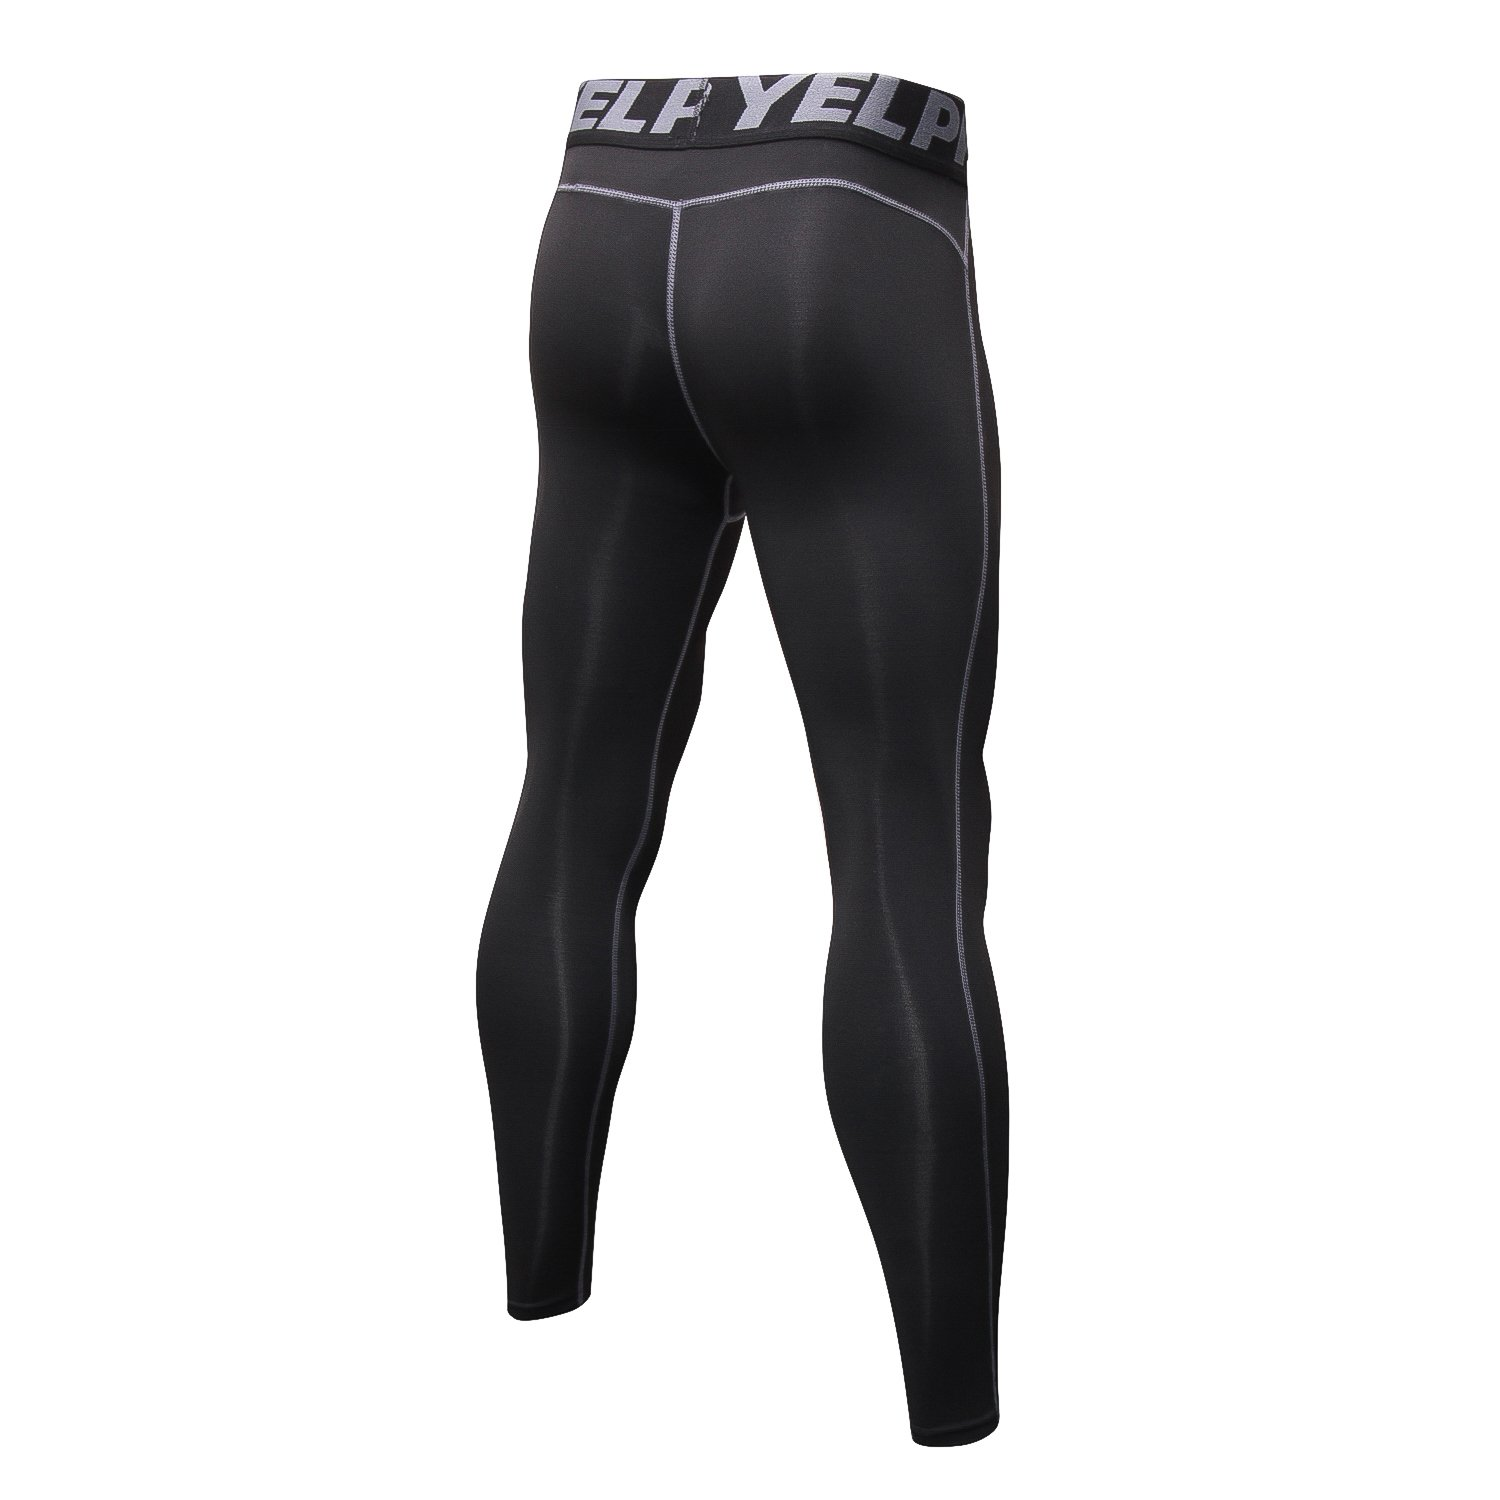 d47b170aa7 Amazon.com: Malavita Men Compression Pants Sports Tights Leggings Base  Layers Workout Running 2 Pack: Clothing